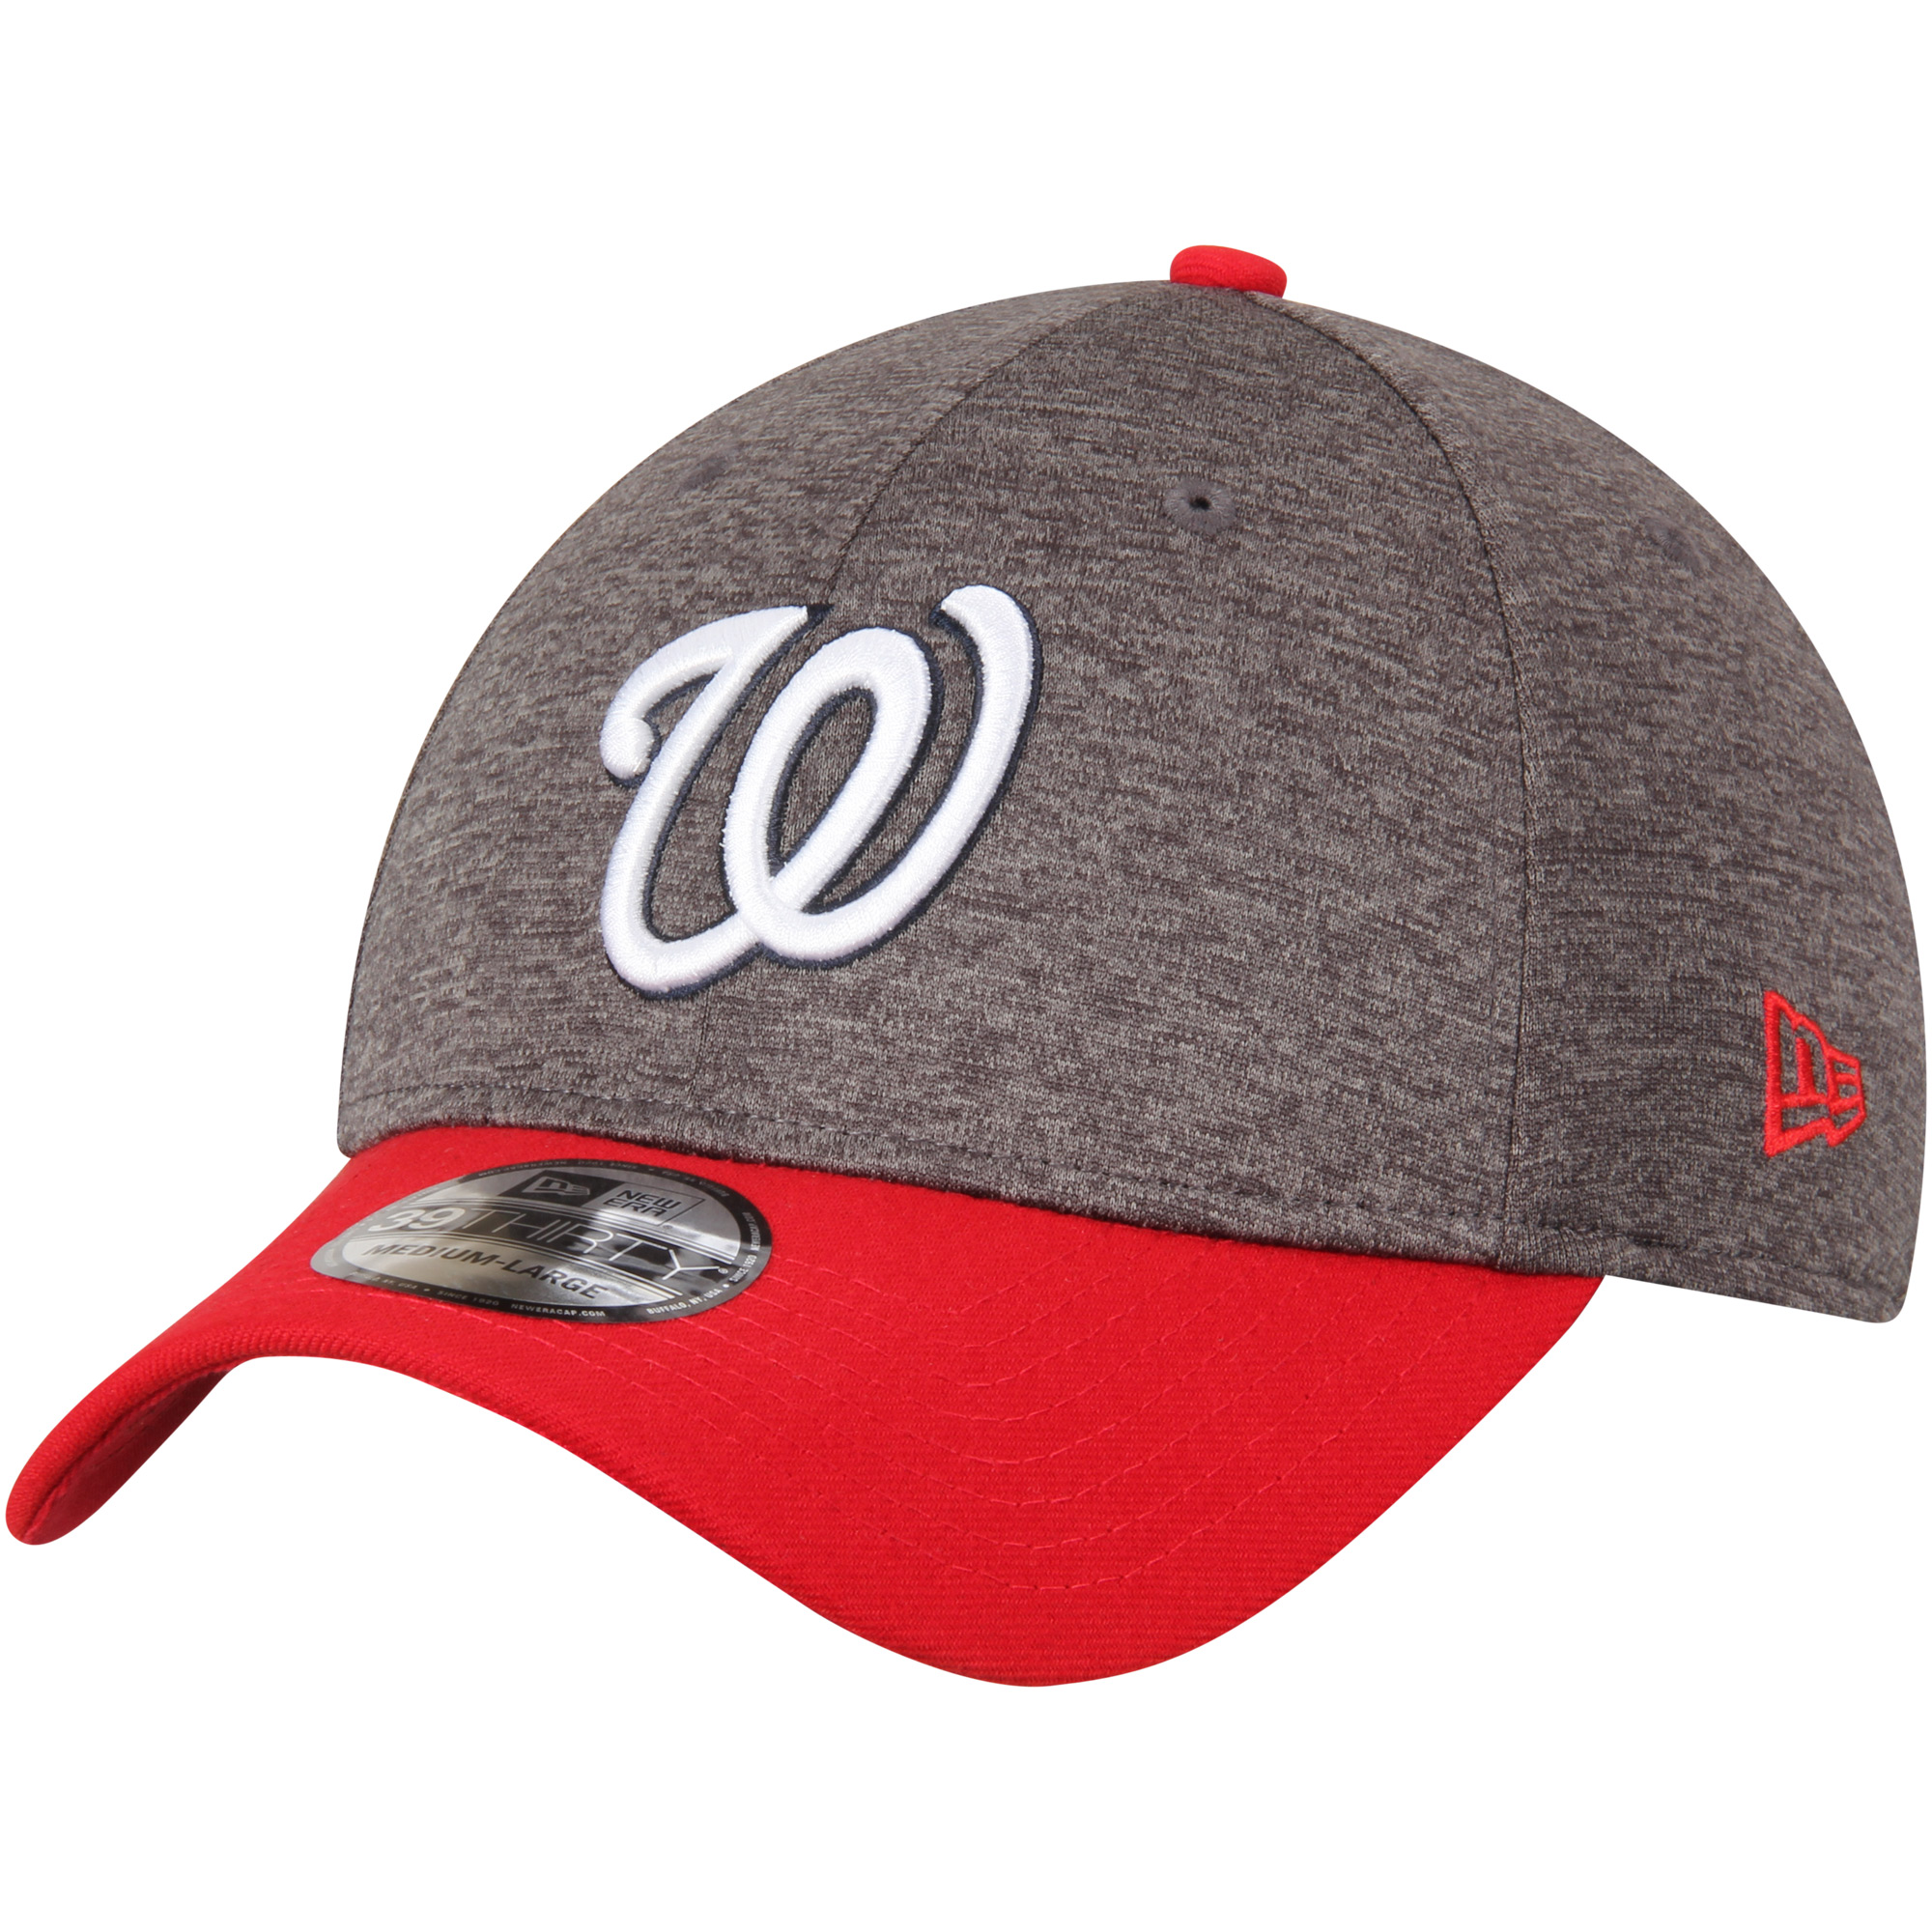 Washington Nationals New Era Adult 39THIRTY Shadow Tech Flex Hat - Heathered Gray/Red